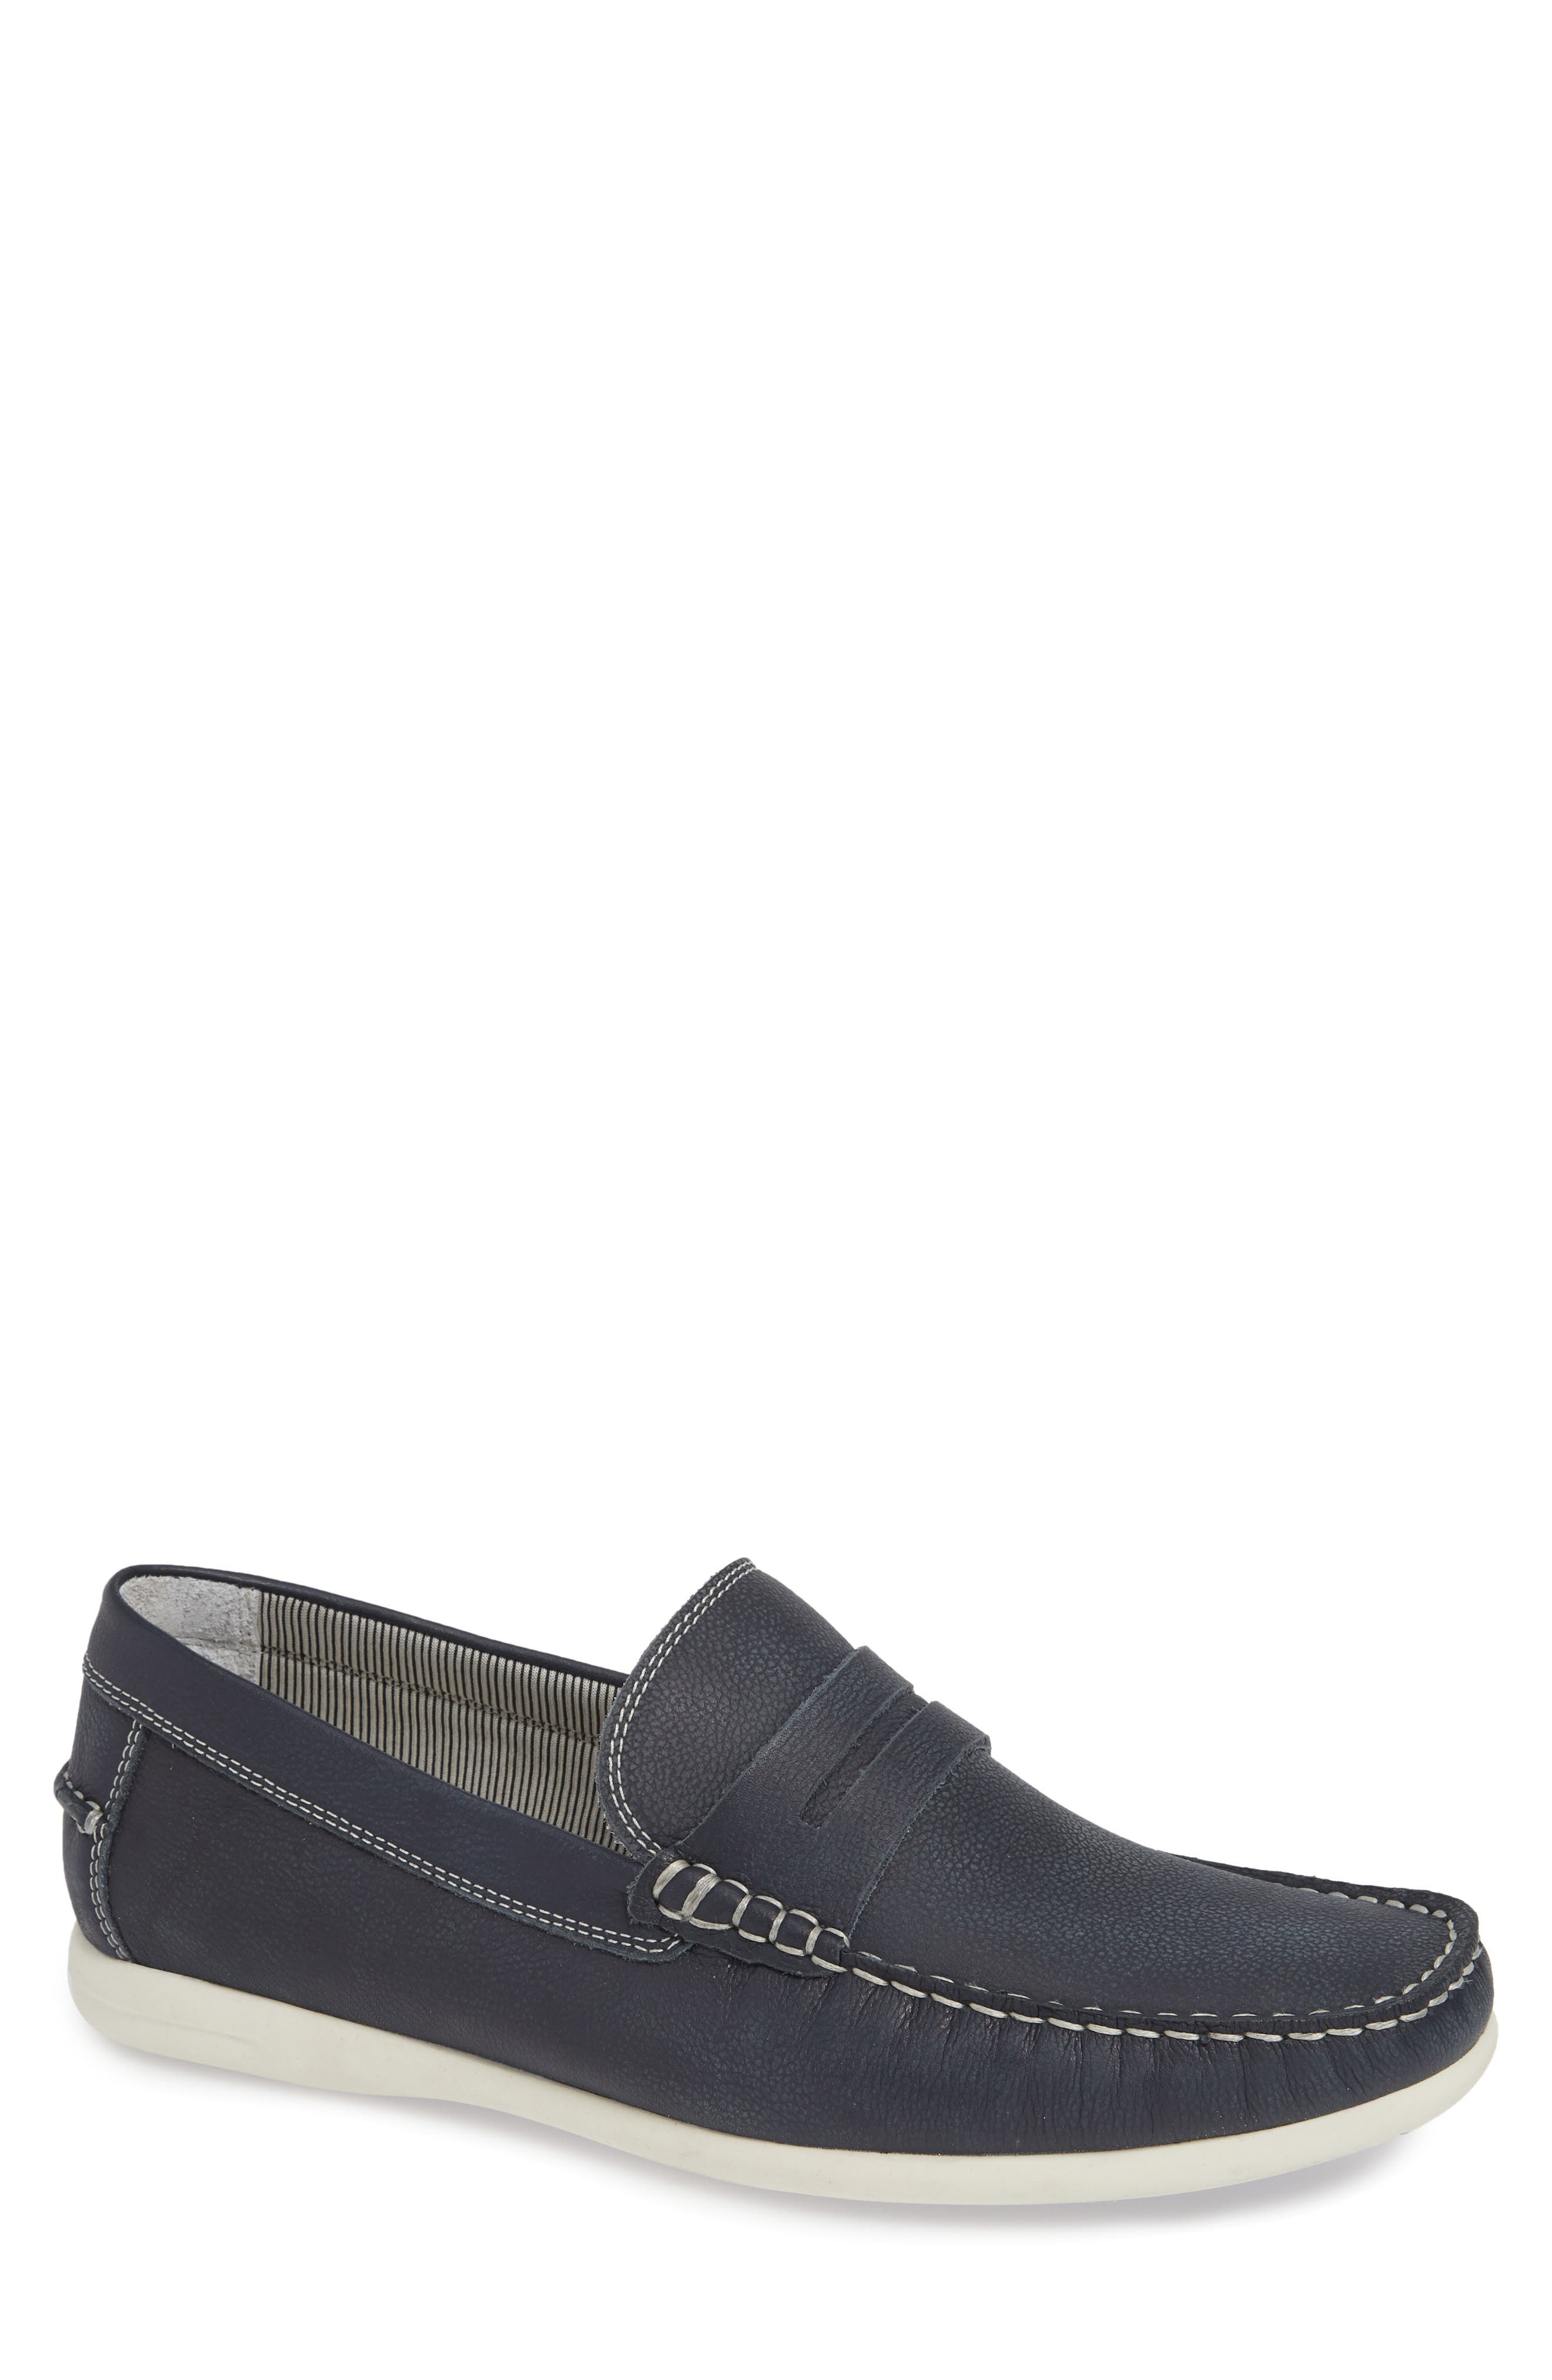 Napa Penny Loafer,                         Main,                         color, NAVY LEATHER